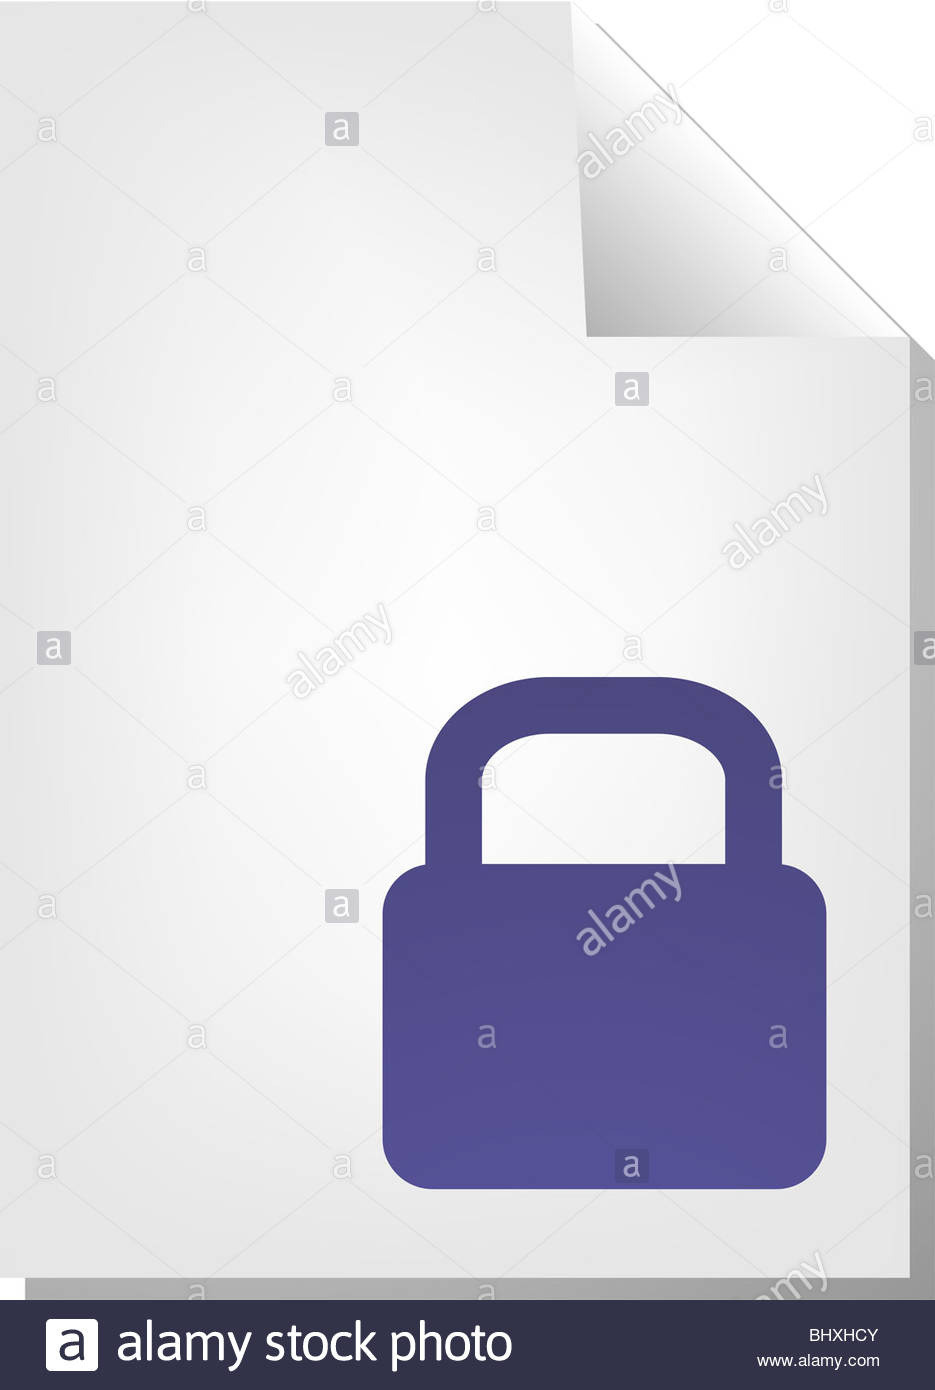 Document File Type Icon Illustration Clipart Stock Photo, Royalty.